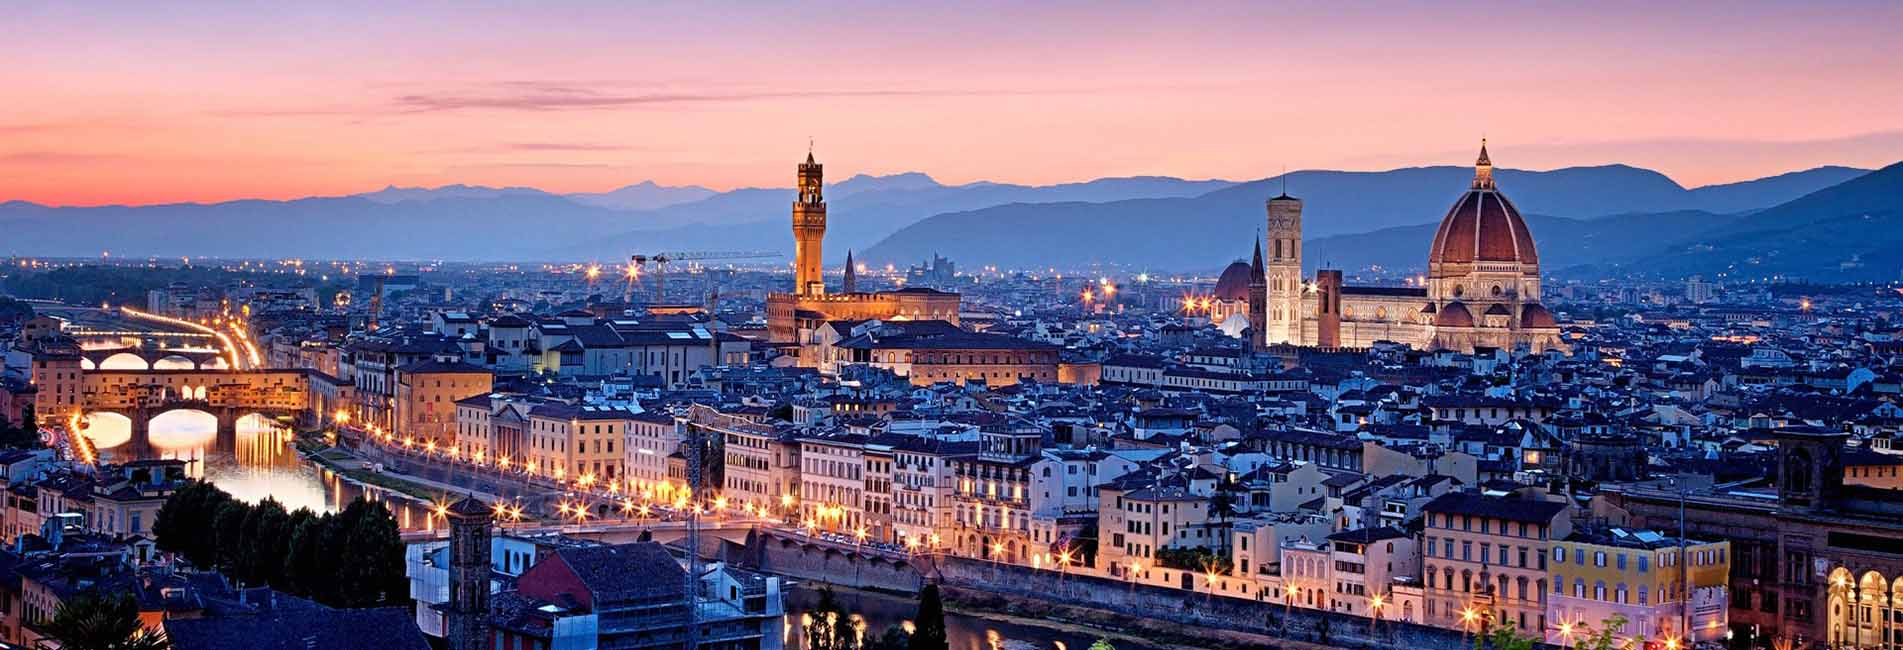 italy-florence-landscape